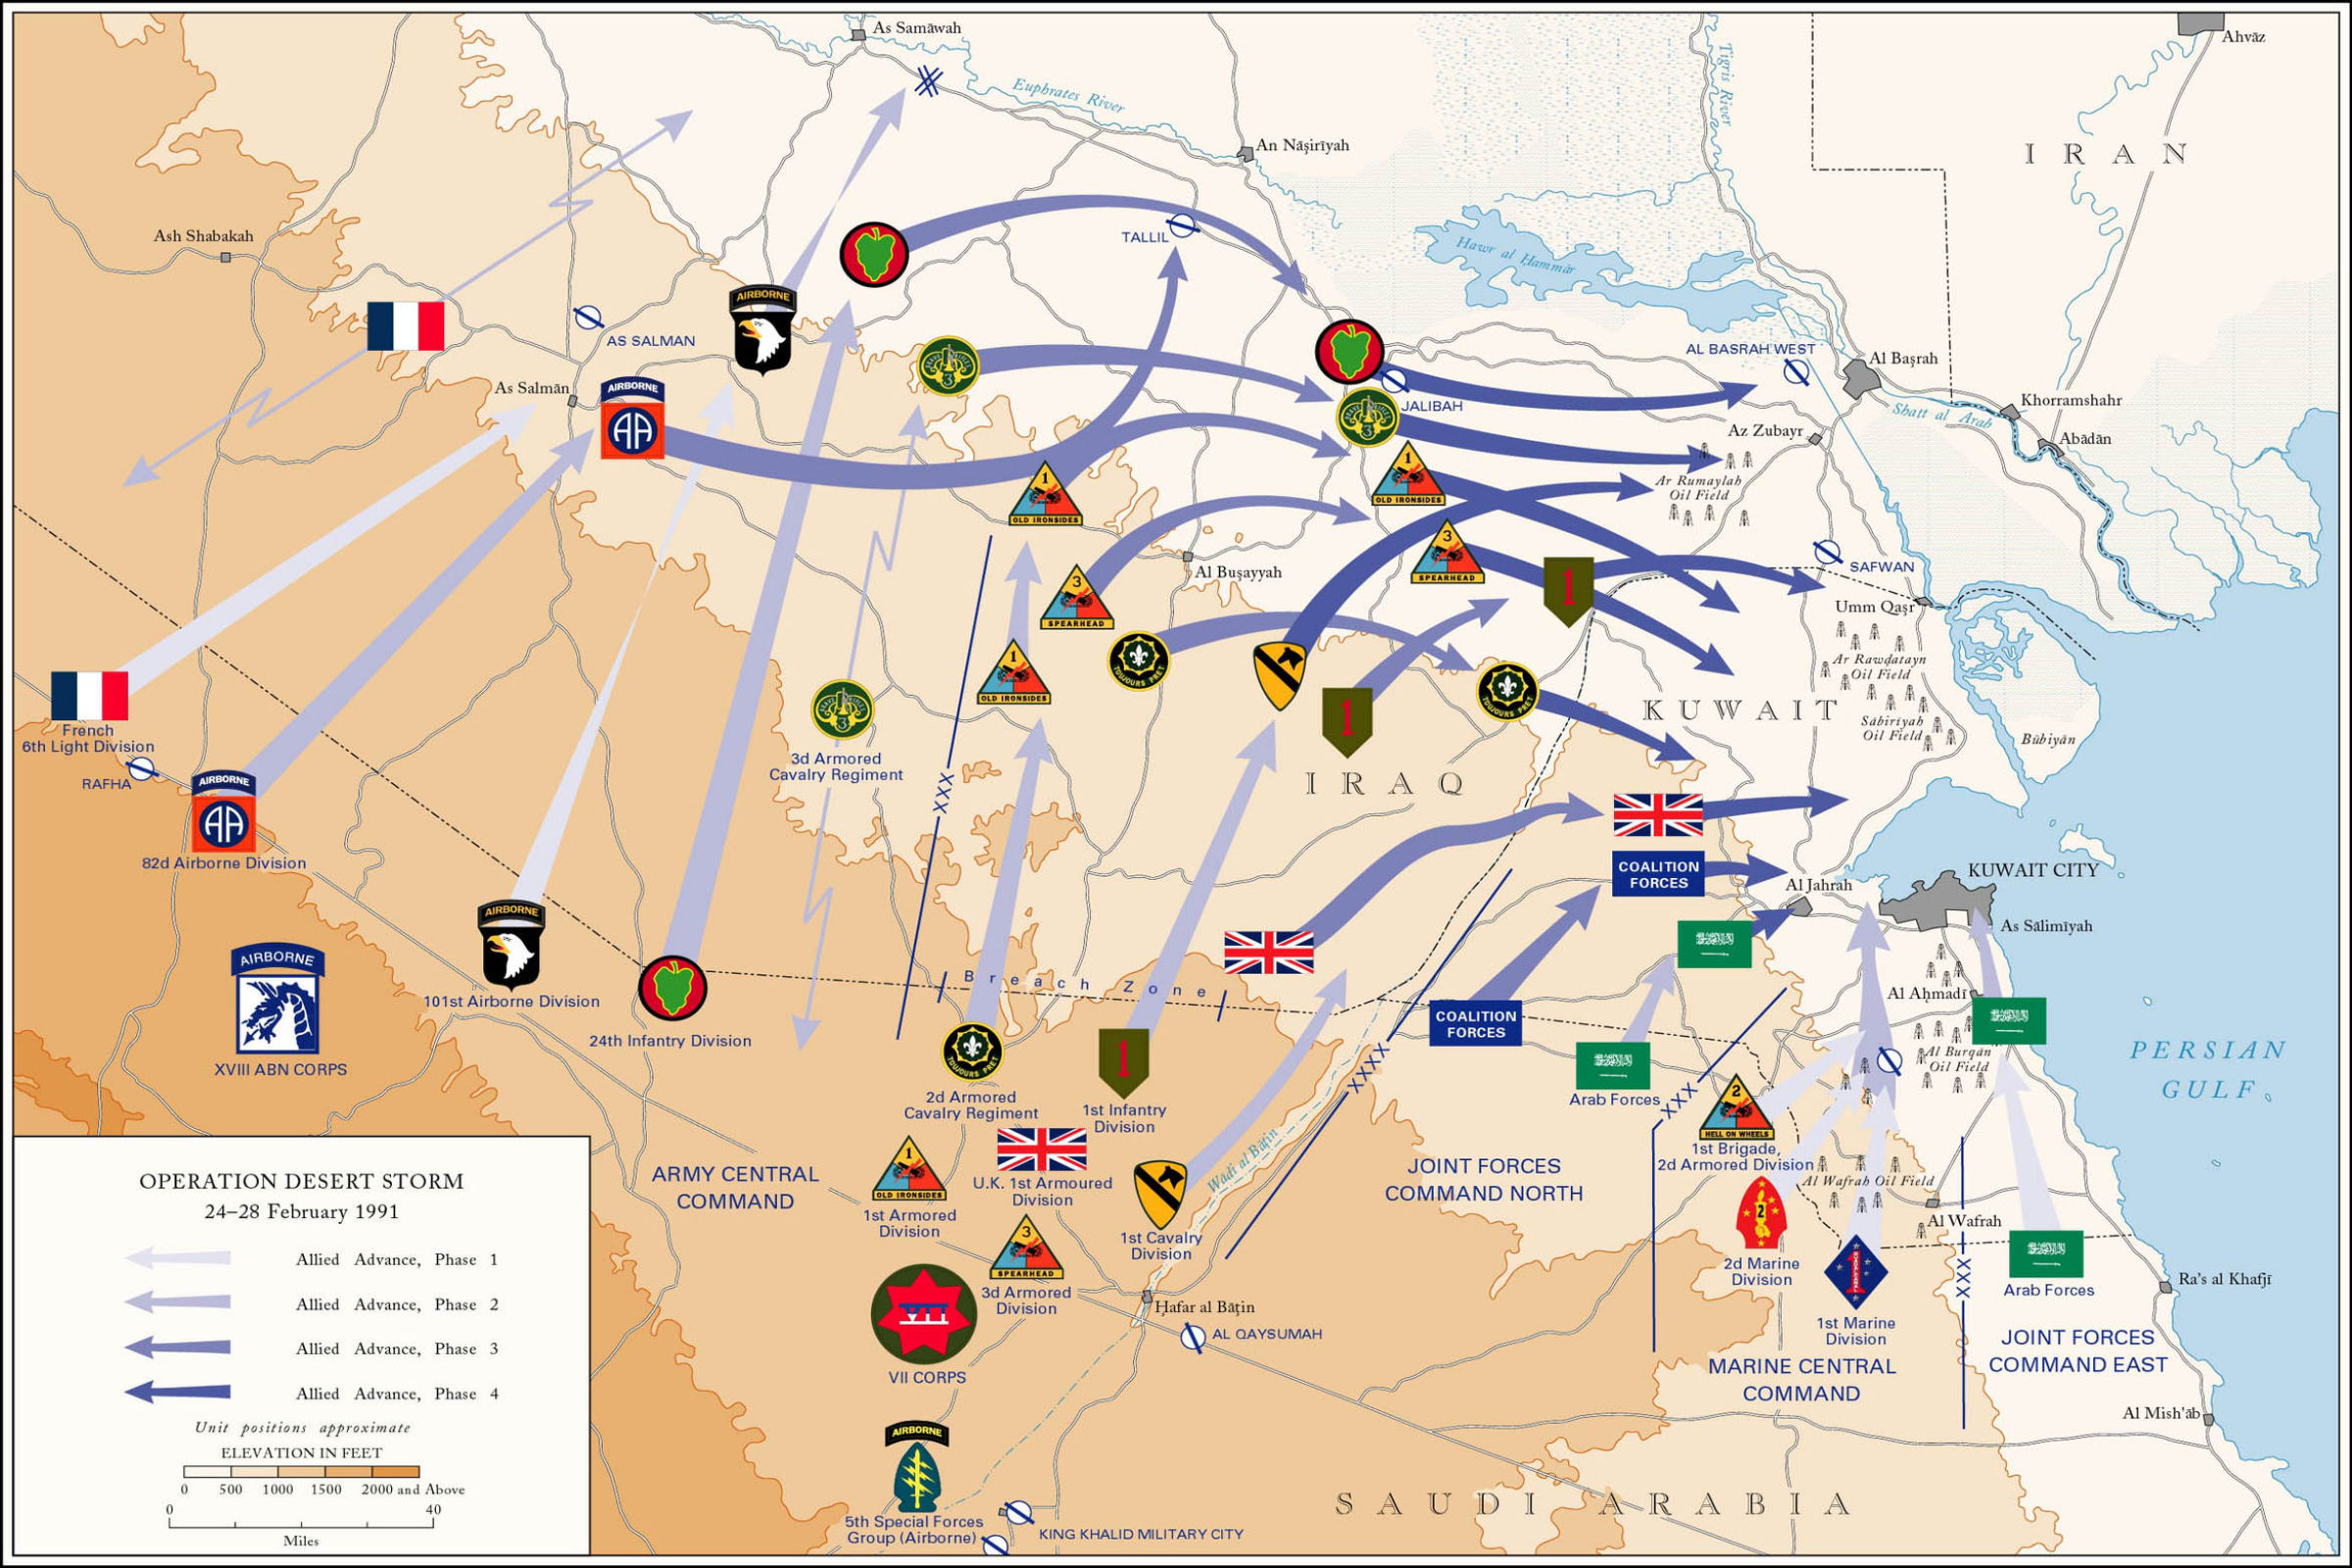 an introduction to the history of gulf war in 1991 Comparison between the gulf war and the iraq war introduction the gulf war occurred between 2 nd of august 1990 – 28 th of february 1991, which was for operations leading to the buildup of troops and the defense of saudi arabia.